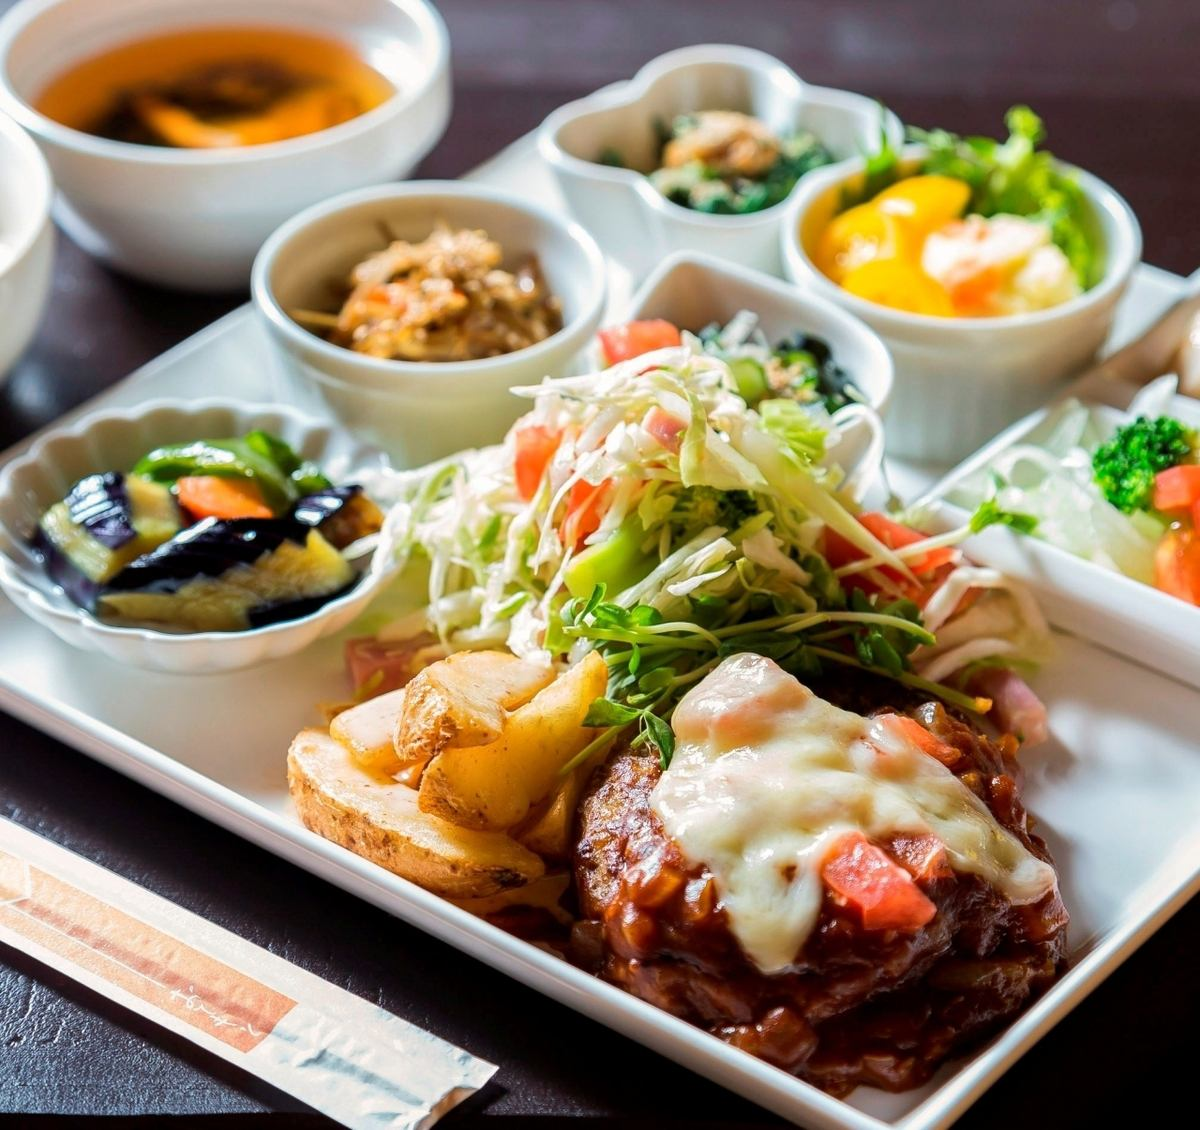 【Limited food】 Popular plate which can take more than 10 types of vegetables at the same time is 1000 yen